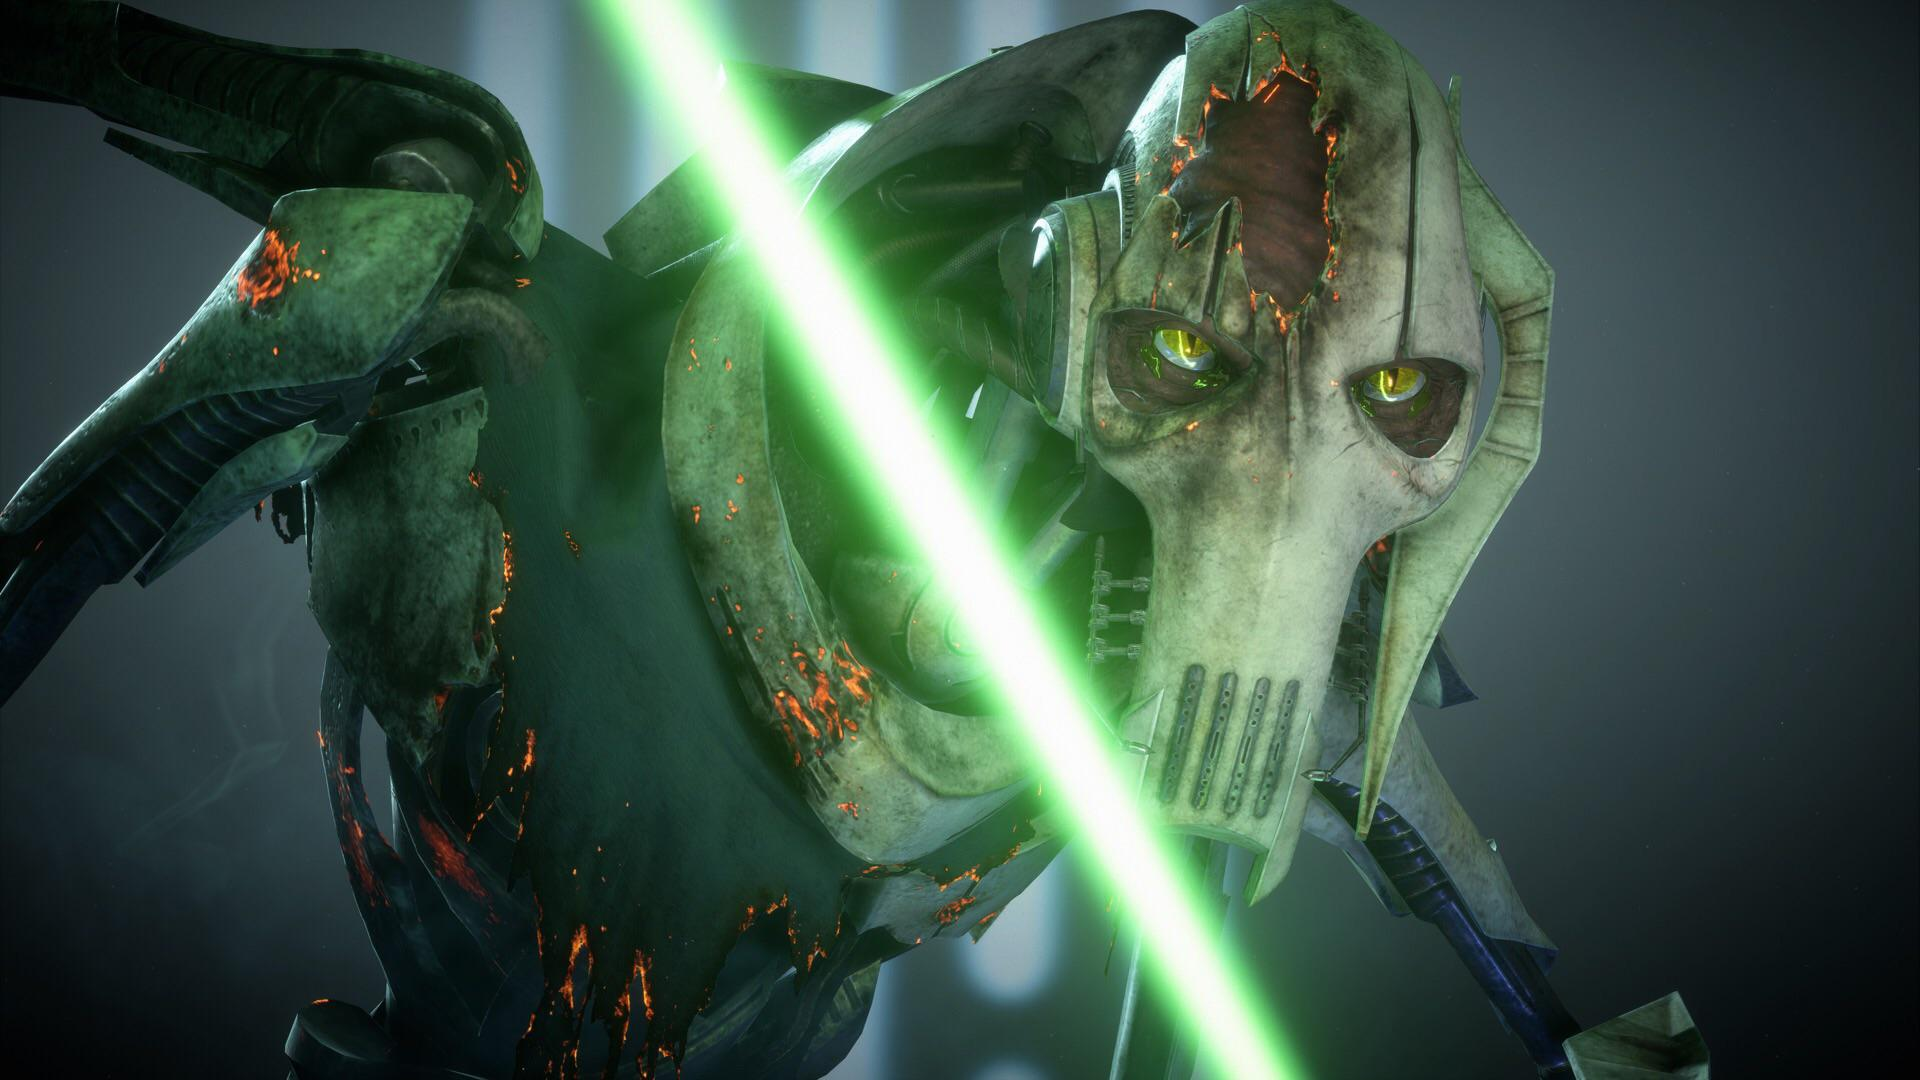 Shattered grievous is so badass thought Id share a better 1920x1080